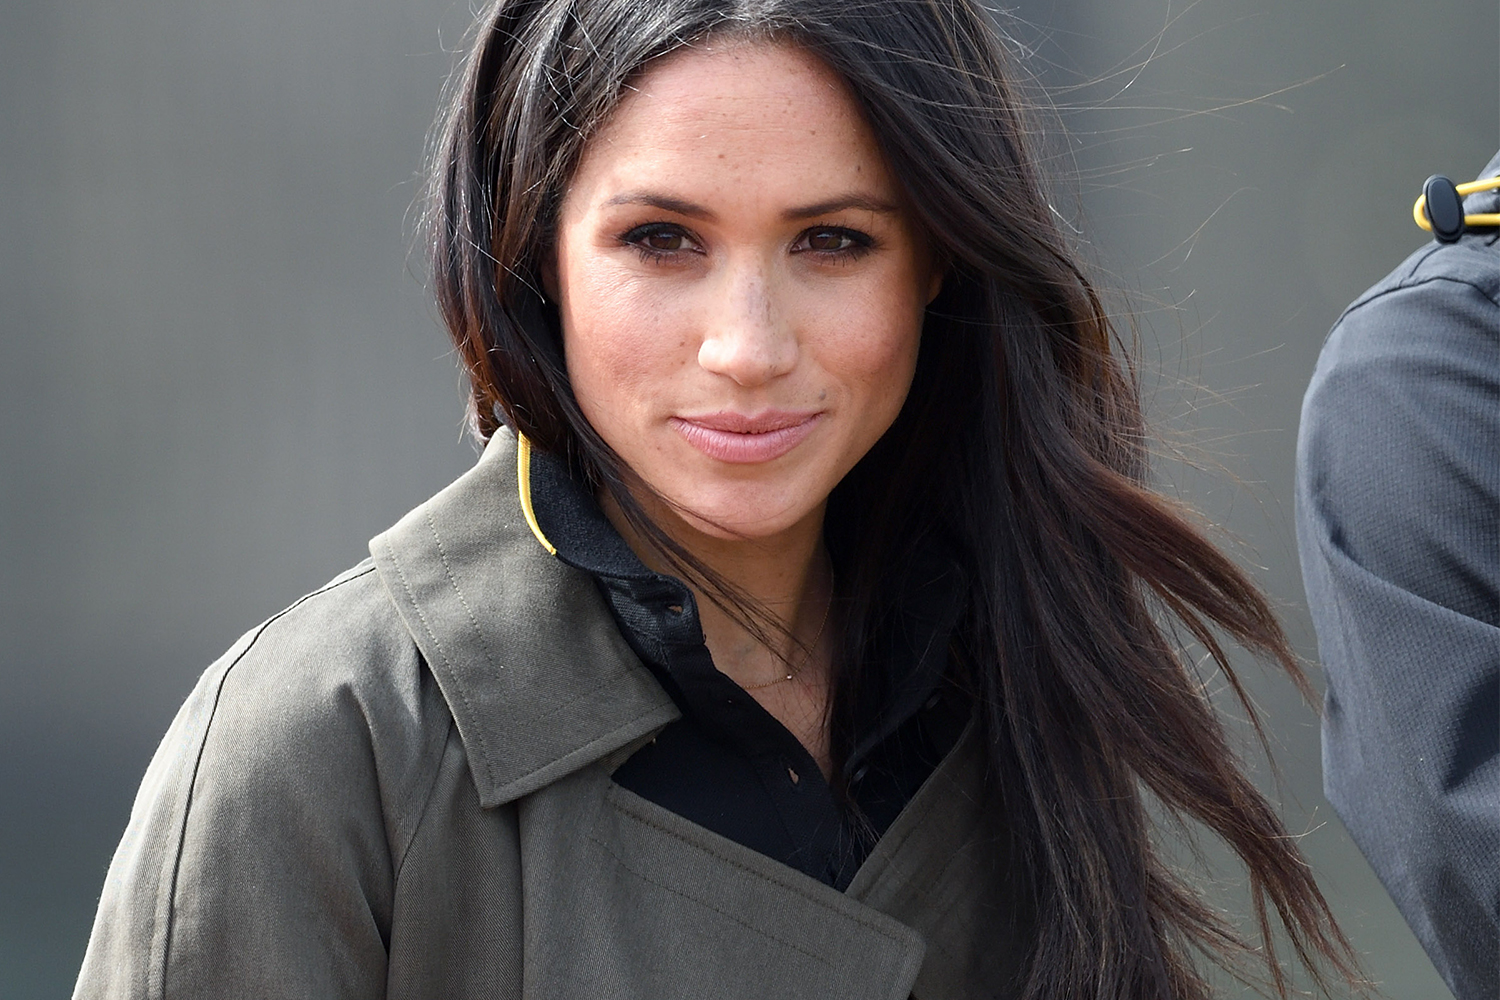 Meghan Markle Steps Out In 90s Style Boot Cut Jeans With